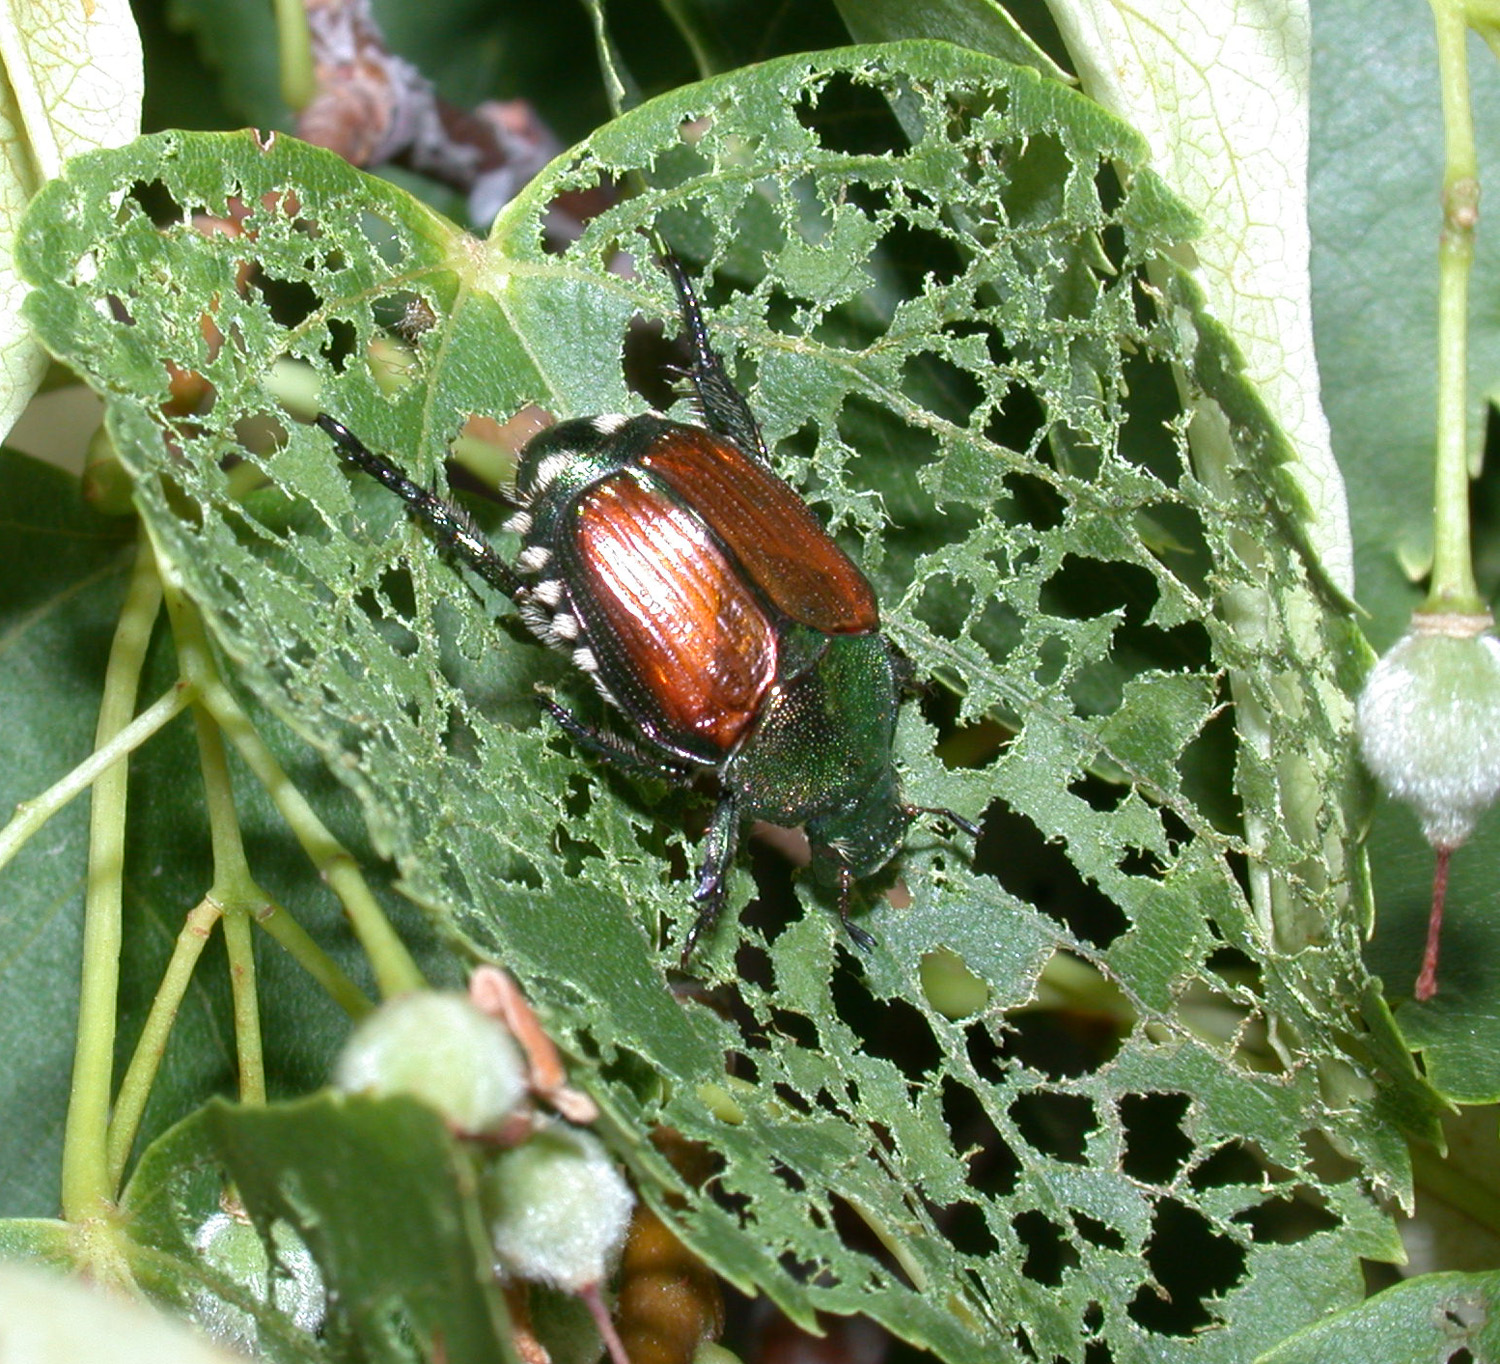 Japanese Beetles In The Urban Landscape